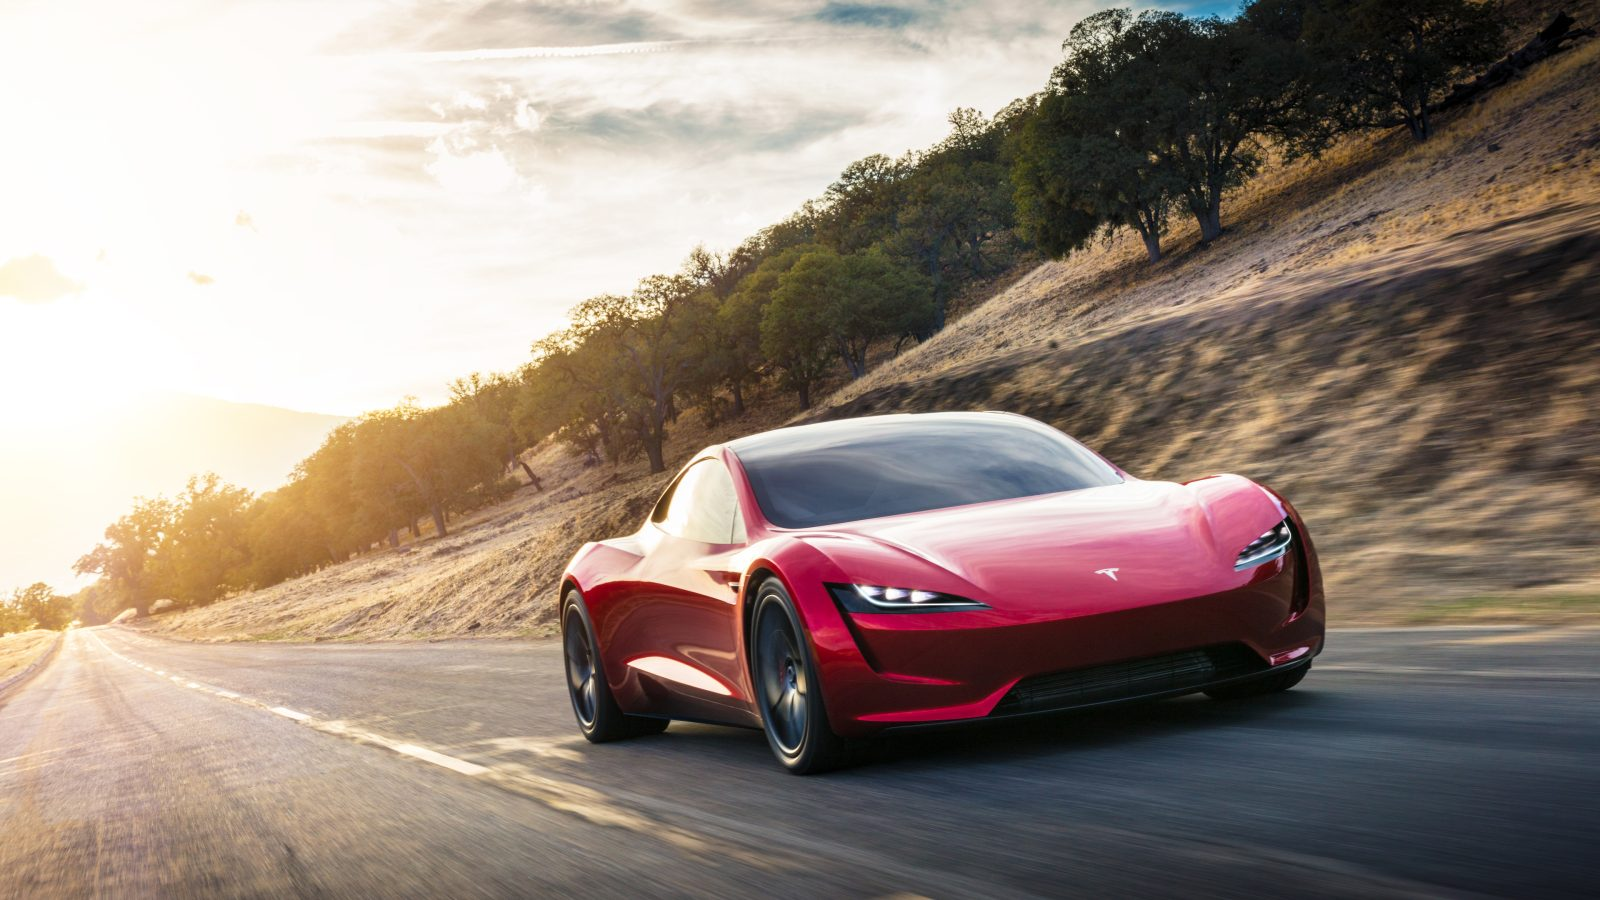 Teslas Next Gen Roadster A Speculative Technical Look At The Car That Will Smack Down Gasoline Powered Cars